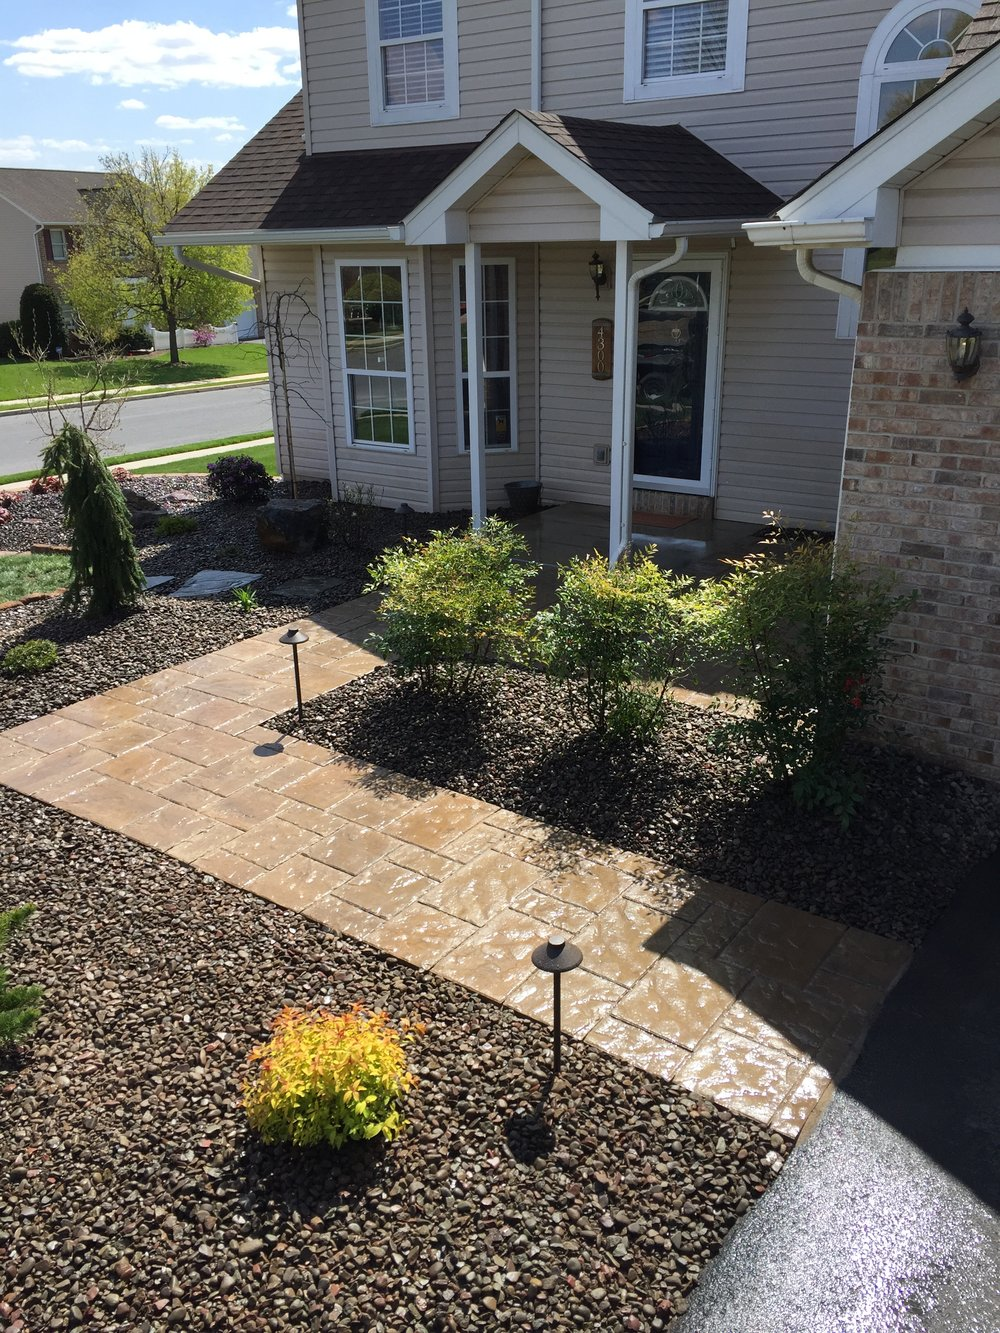 Hire a Landscape Contractor to Create an Eye-Catching Front Entrance in Lebanon County, PA